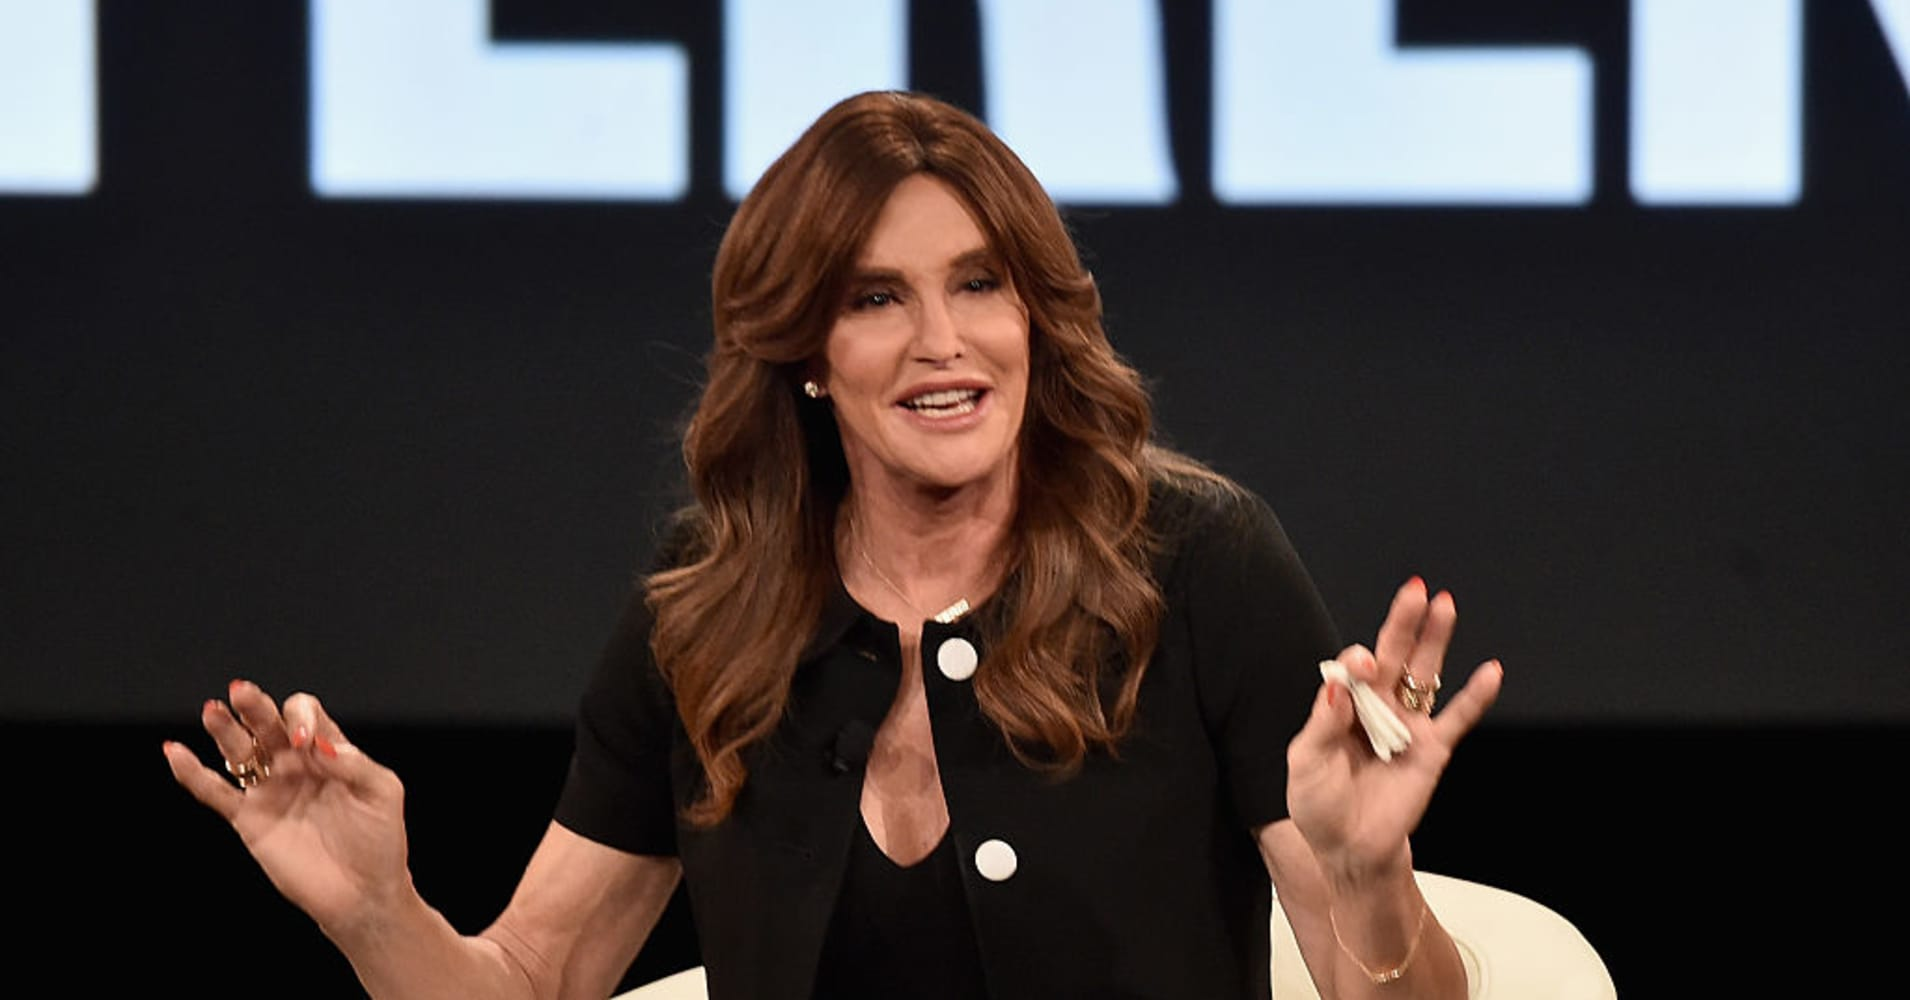 Executive Producer Caitlyn Jenner speaks at the AOL 2016 MAKERS conference at Terranea Resort on February 2, 2016 i